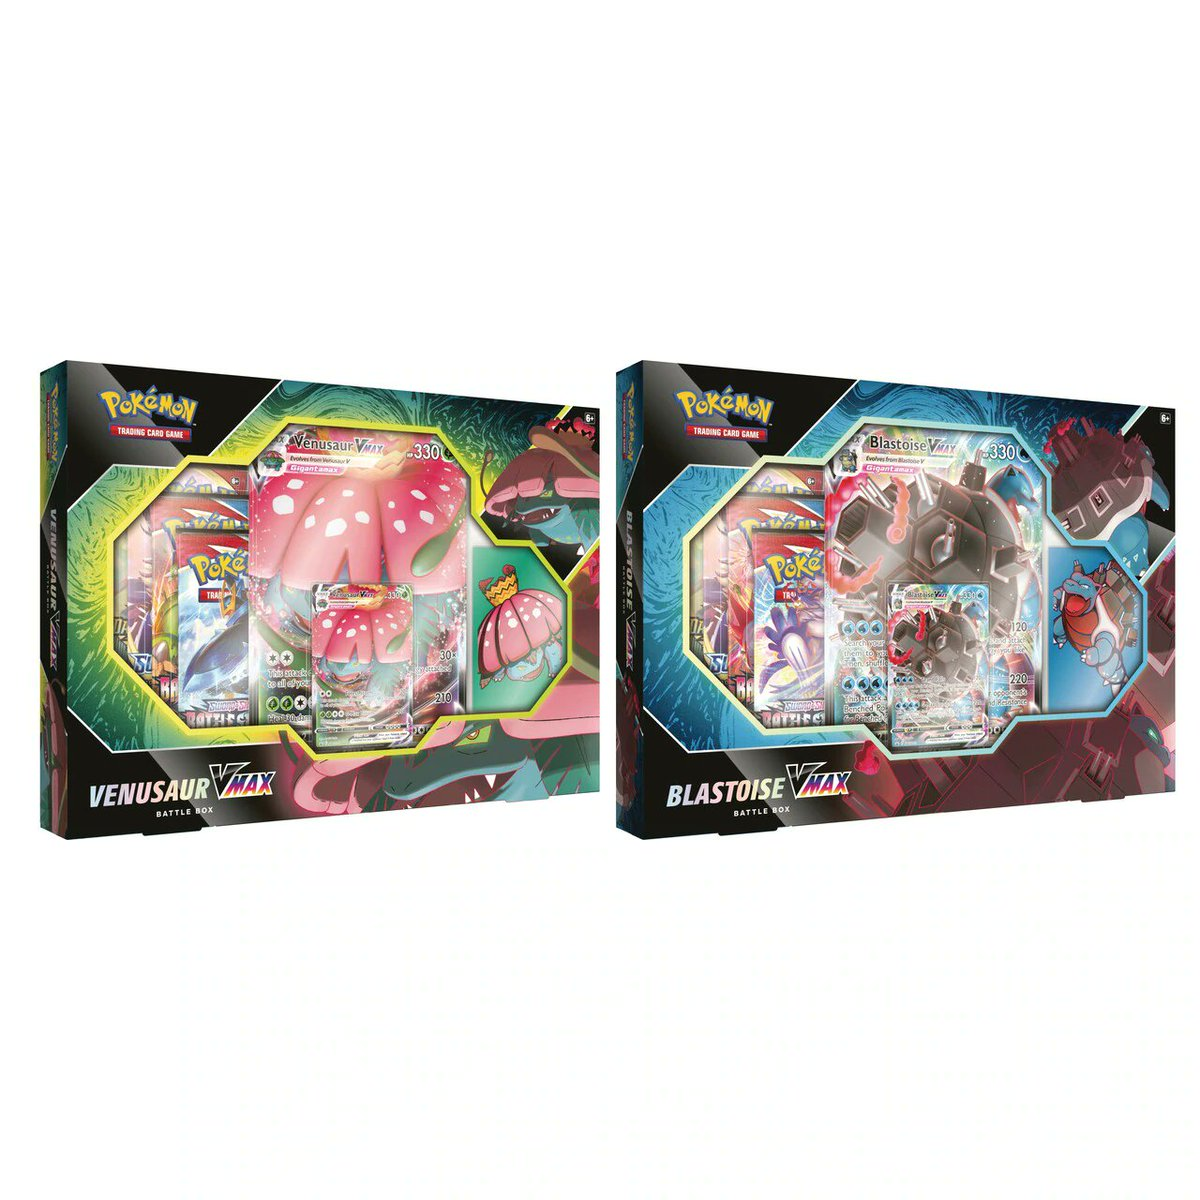 Pokemon - Venusaur and Blastoise VMAX battle box preorders available at Gamenerdz w/ 20% off, $39.97 for both (MSRP $50)    #pokemon #pokemontcg #pokemongo #pokemoncards #ptcgo #pokemonswordshield #vmax #venusaur #blastoise #battlestyles #tcgdeals #tcg